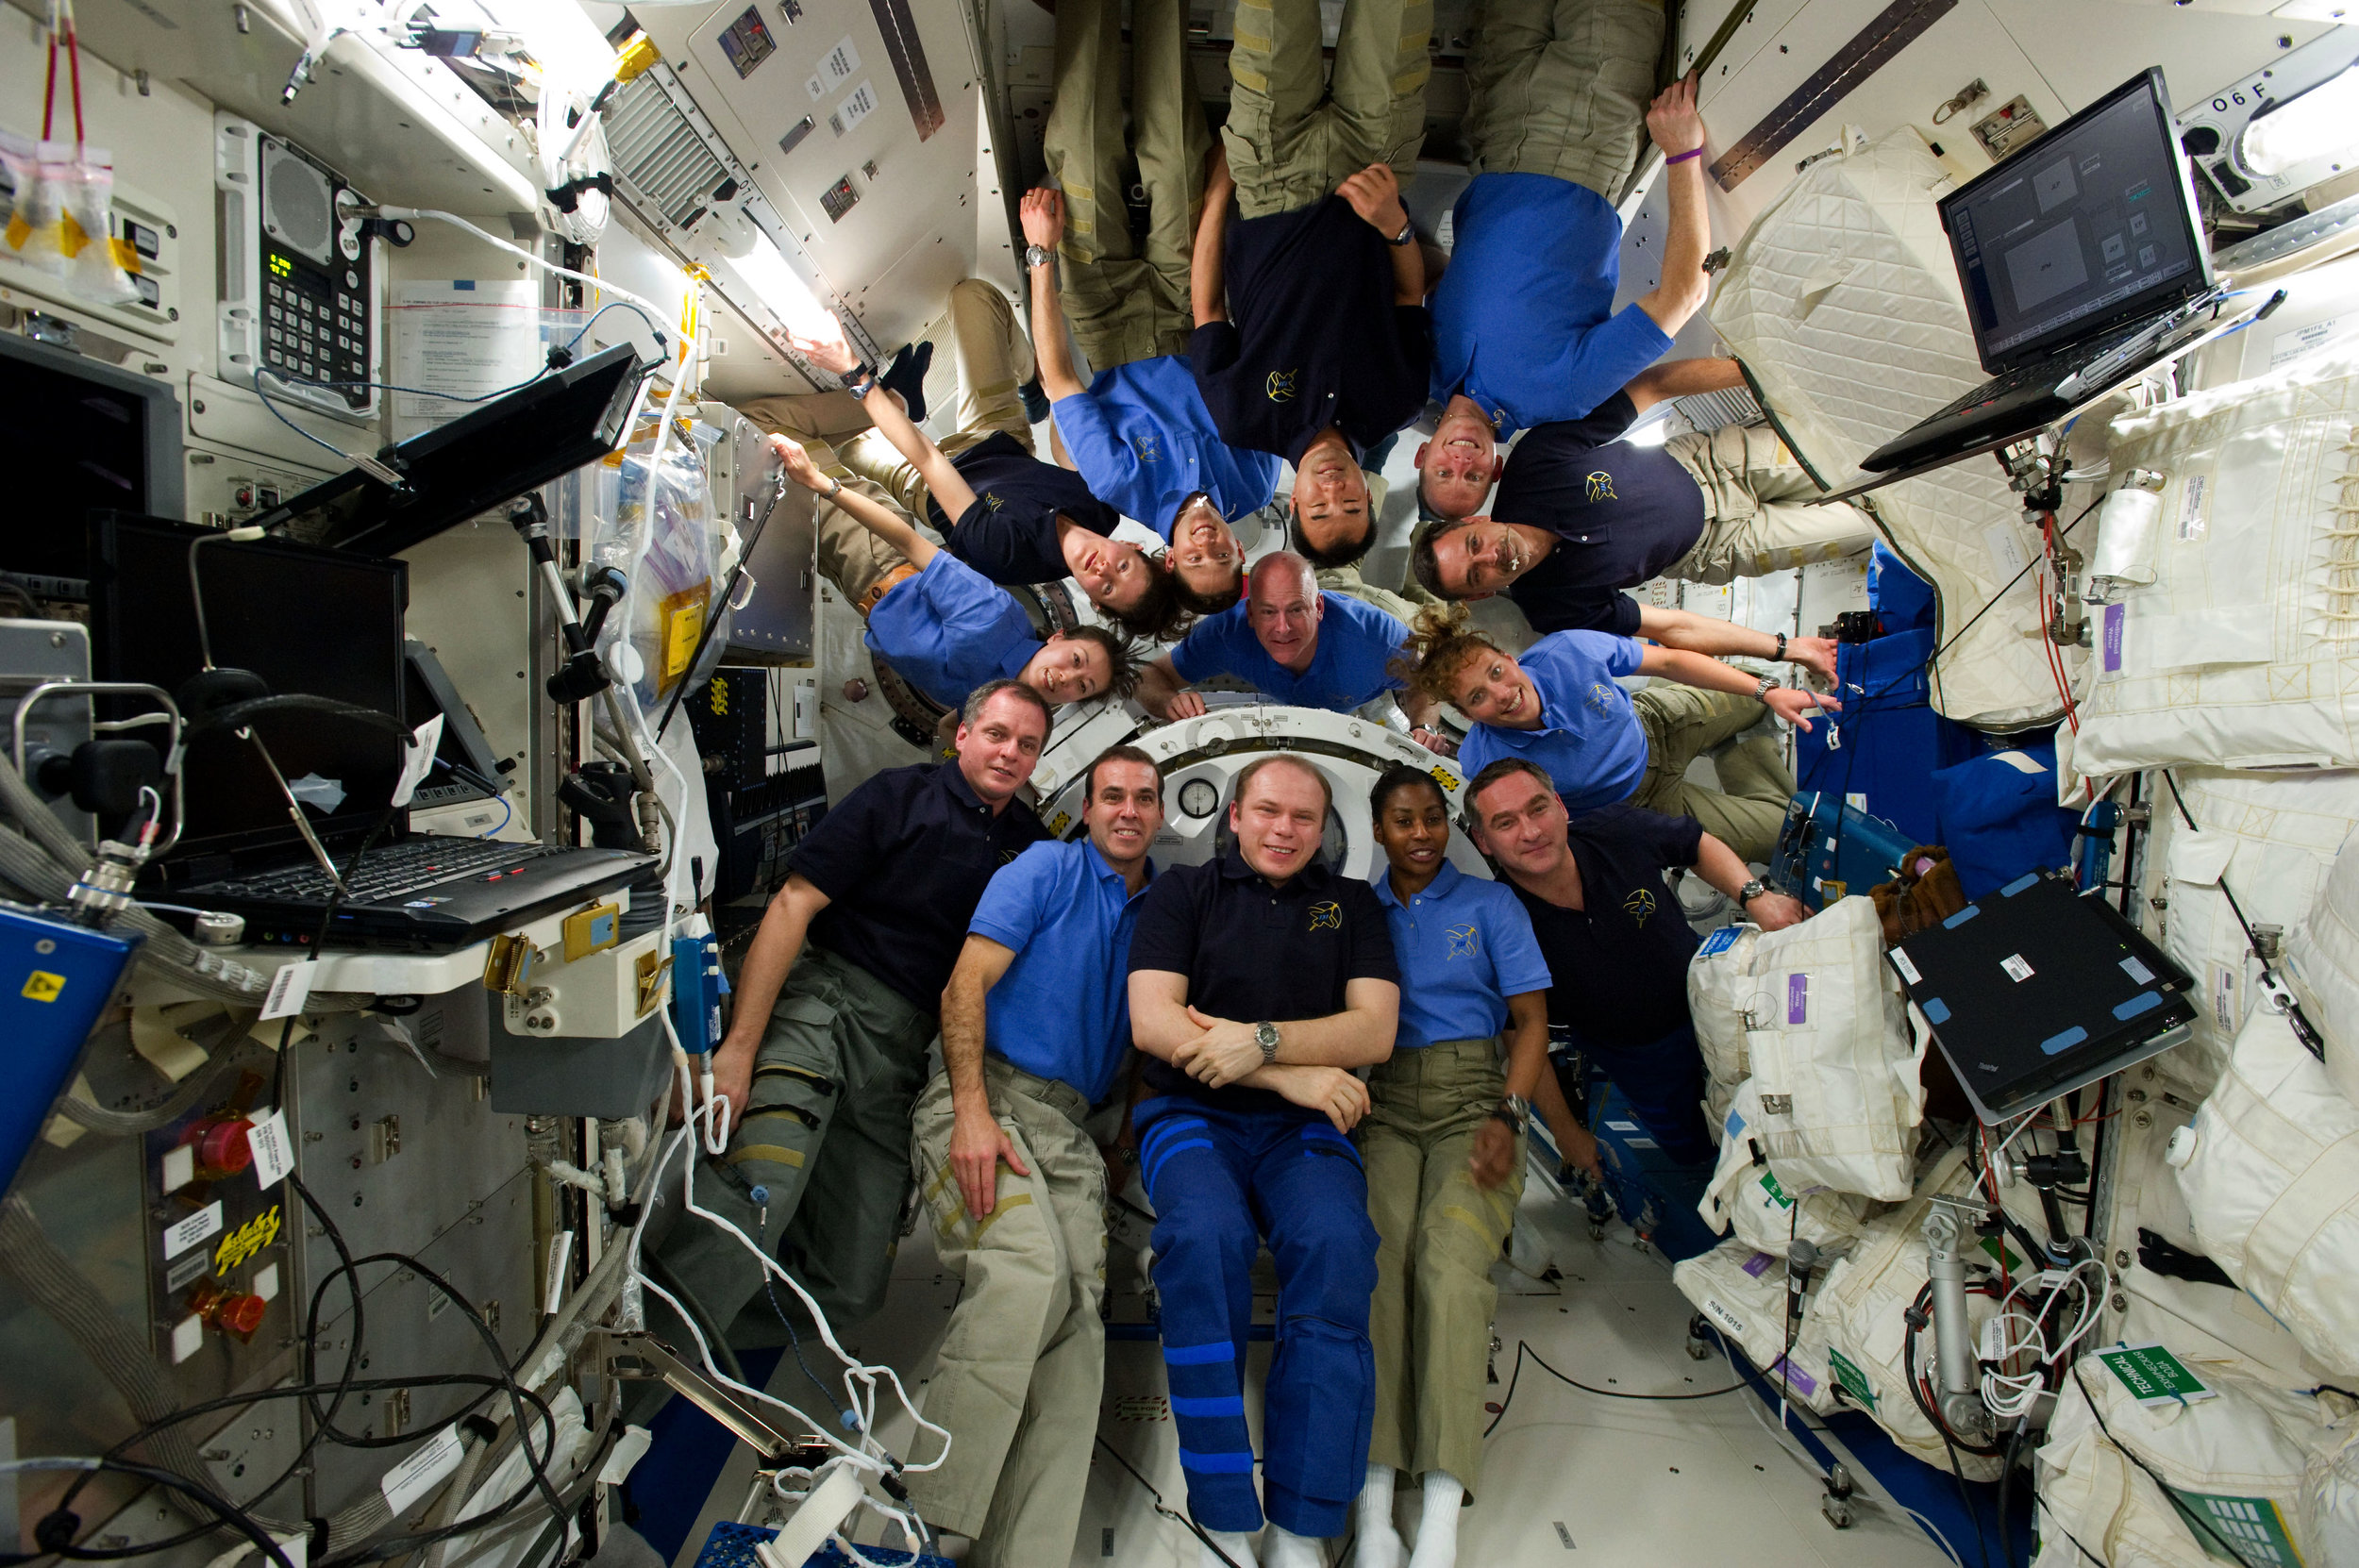 Seven astronauts from Space Shuttle Endeavor (in blue shirts) join the ISS crew for a group portrait in the Japanese module Kibo. It was the first time four women were in orbit together. Photo credit: NASA